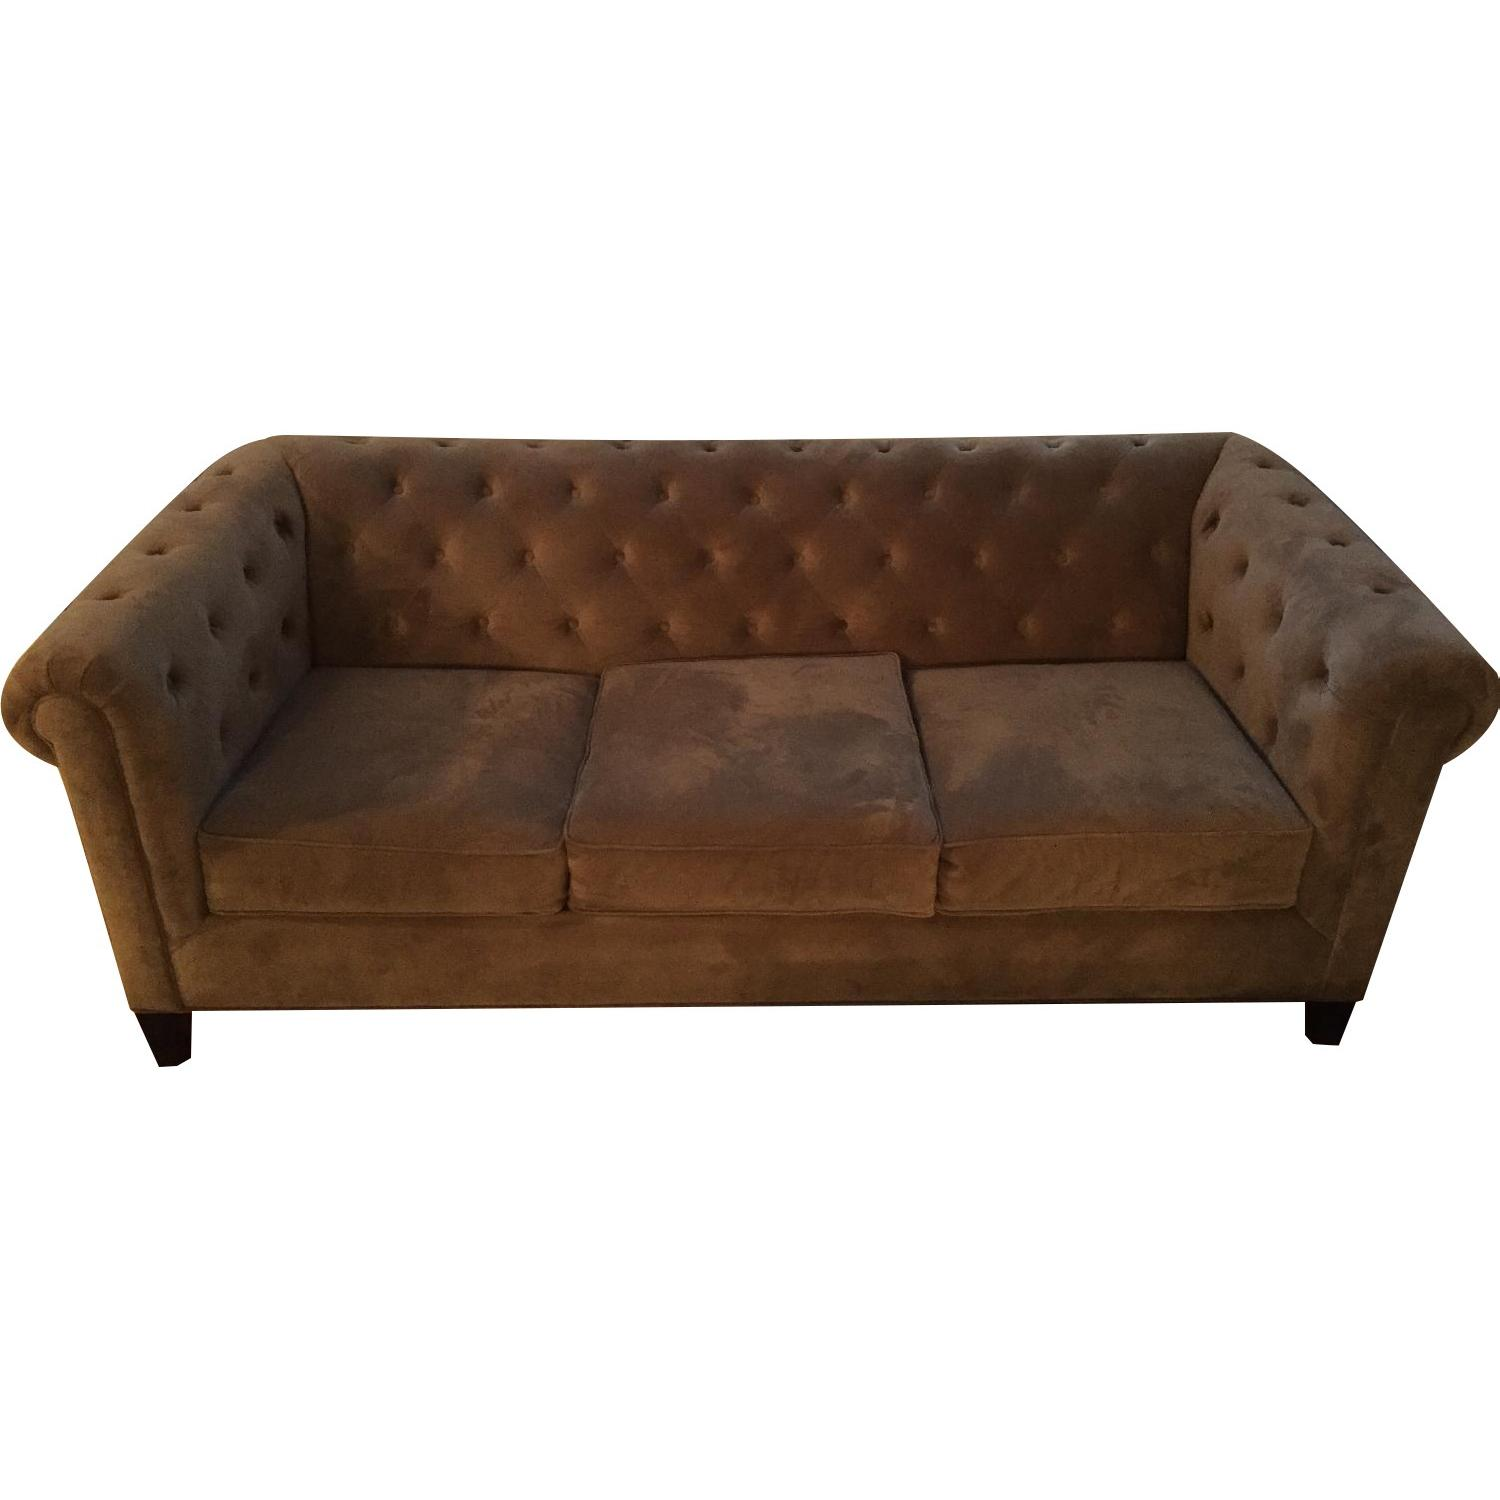 Macy's Grey Tufted Couch - image-0